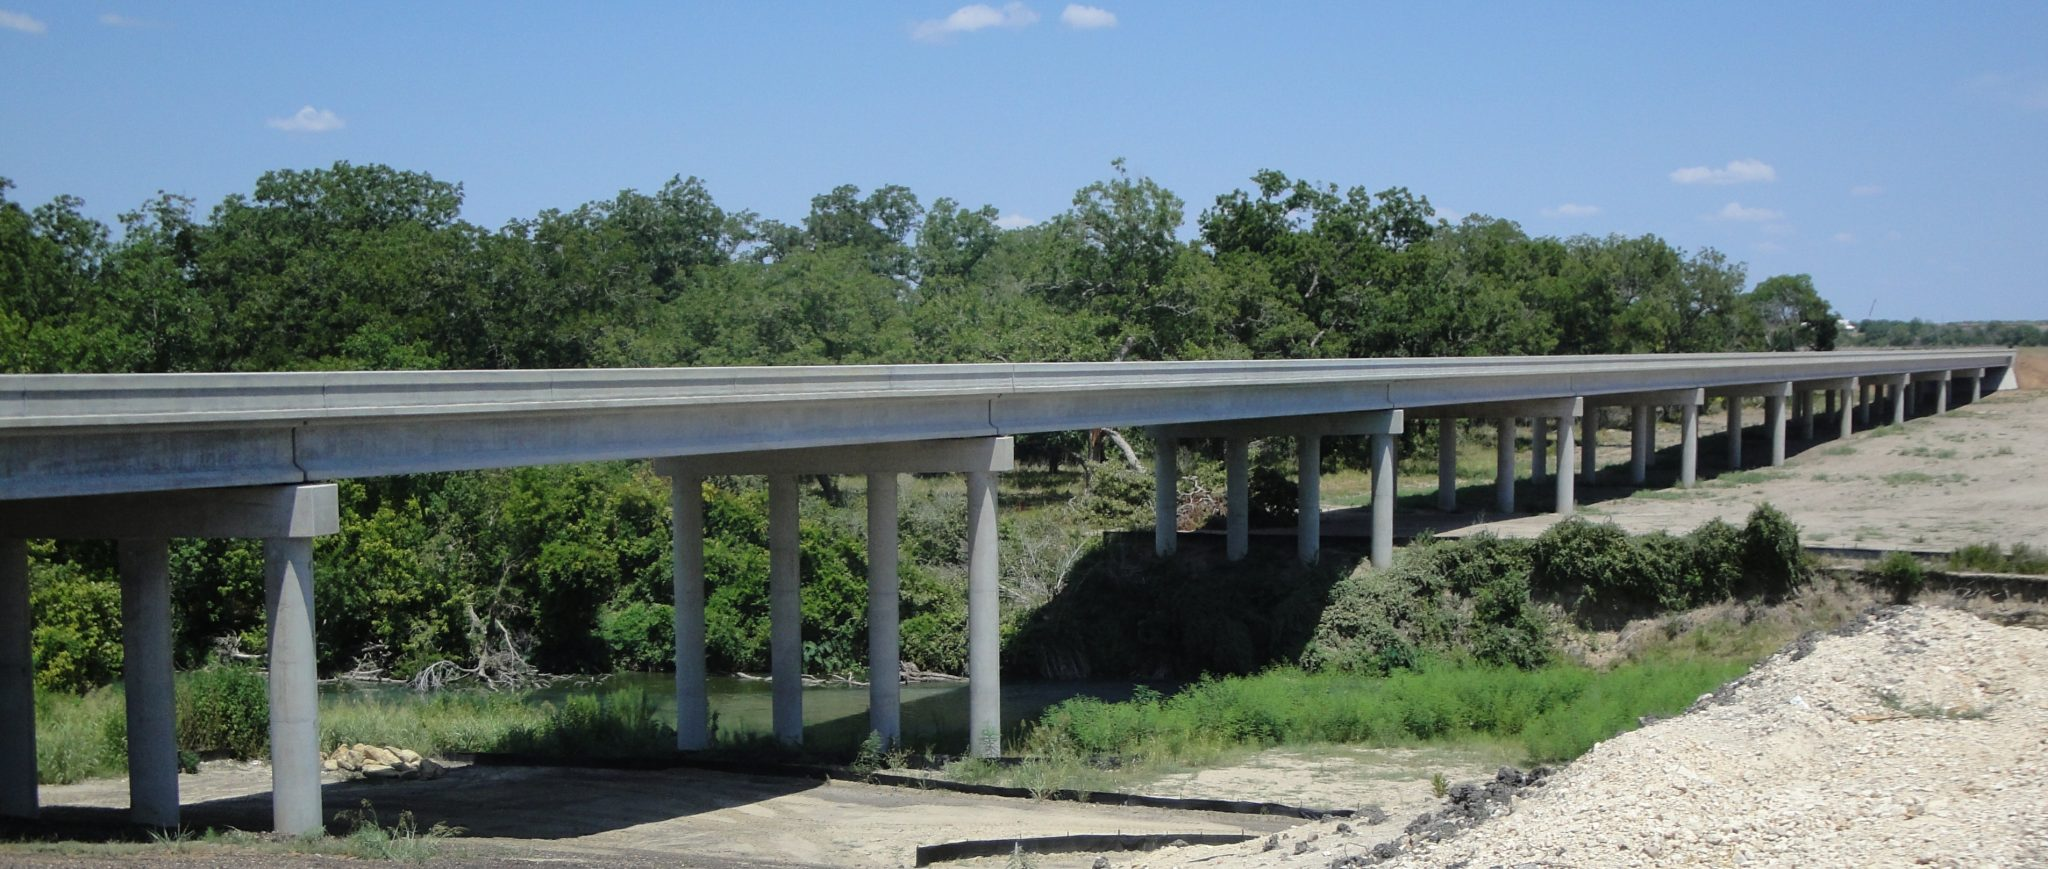 SH 130 Bridge over San Marcos River, Guadalupe County, TX